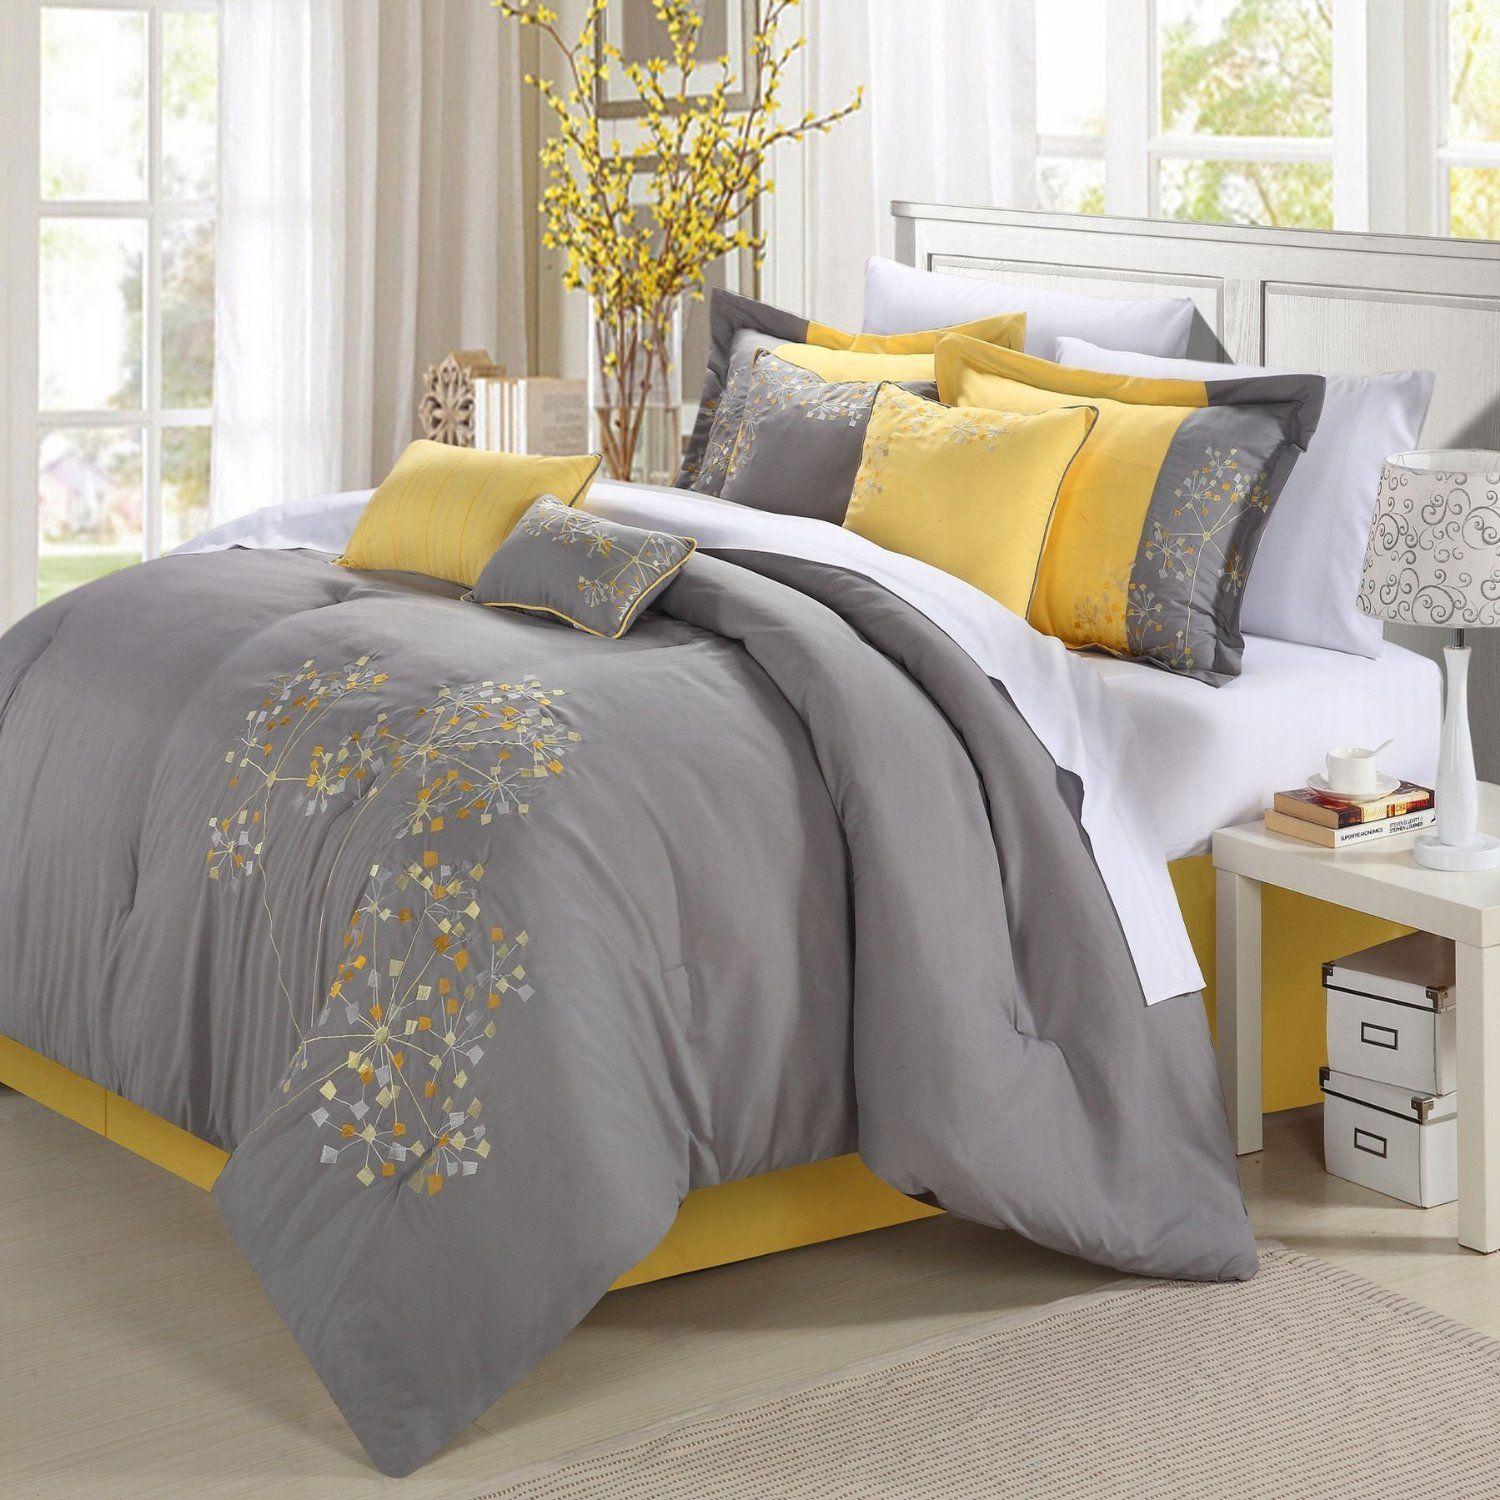 and cover of duvet double pillowcase queen kertistel full ikea x yellow s photo